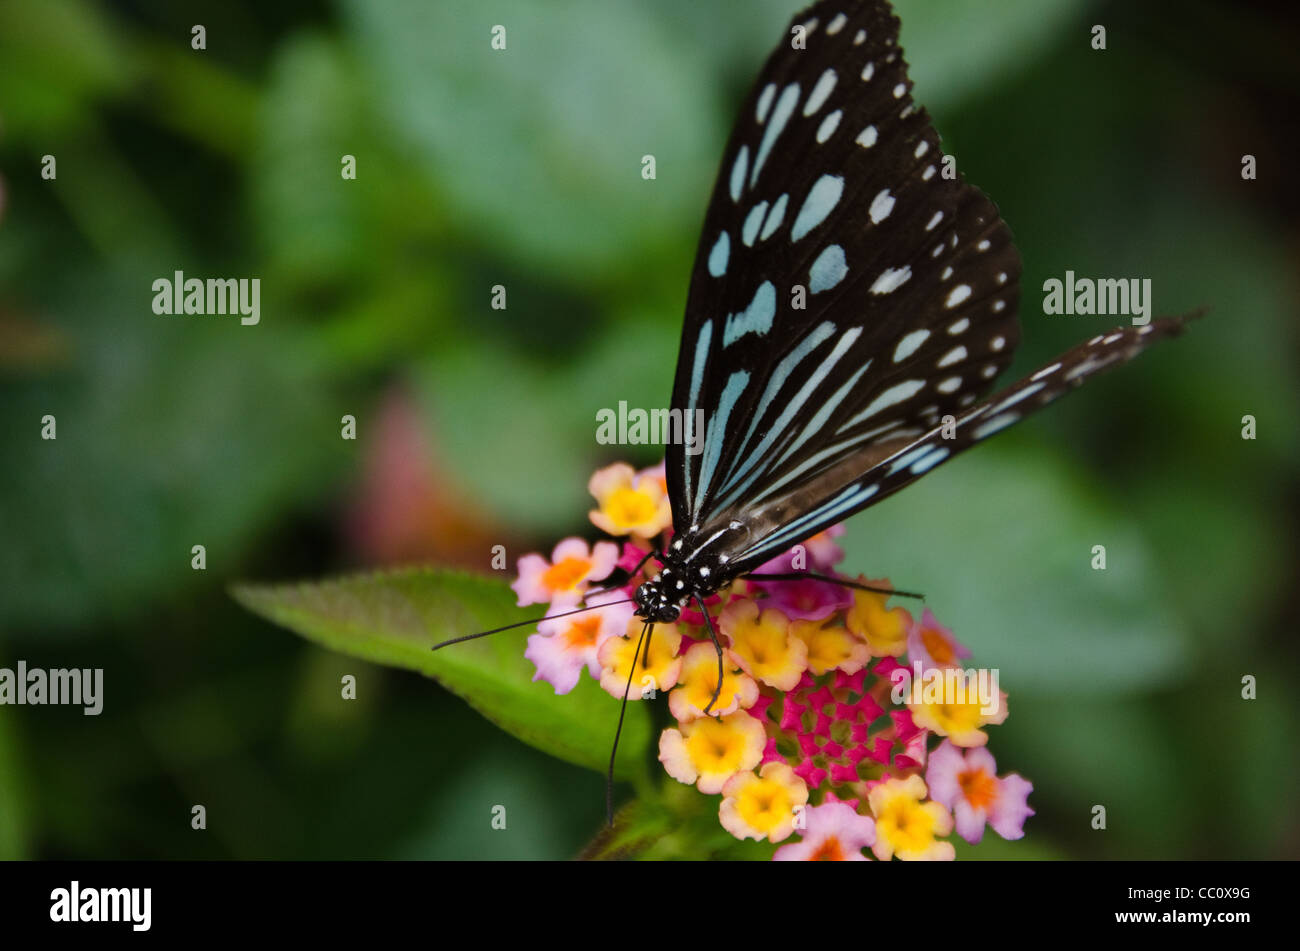 Blue butterfly, Ideopsis sp. from Japan sitting and feeding nectar on a flower - Stock Image